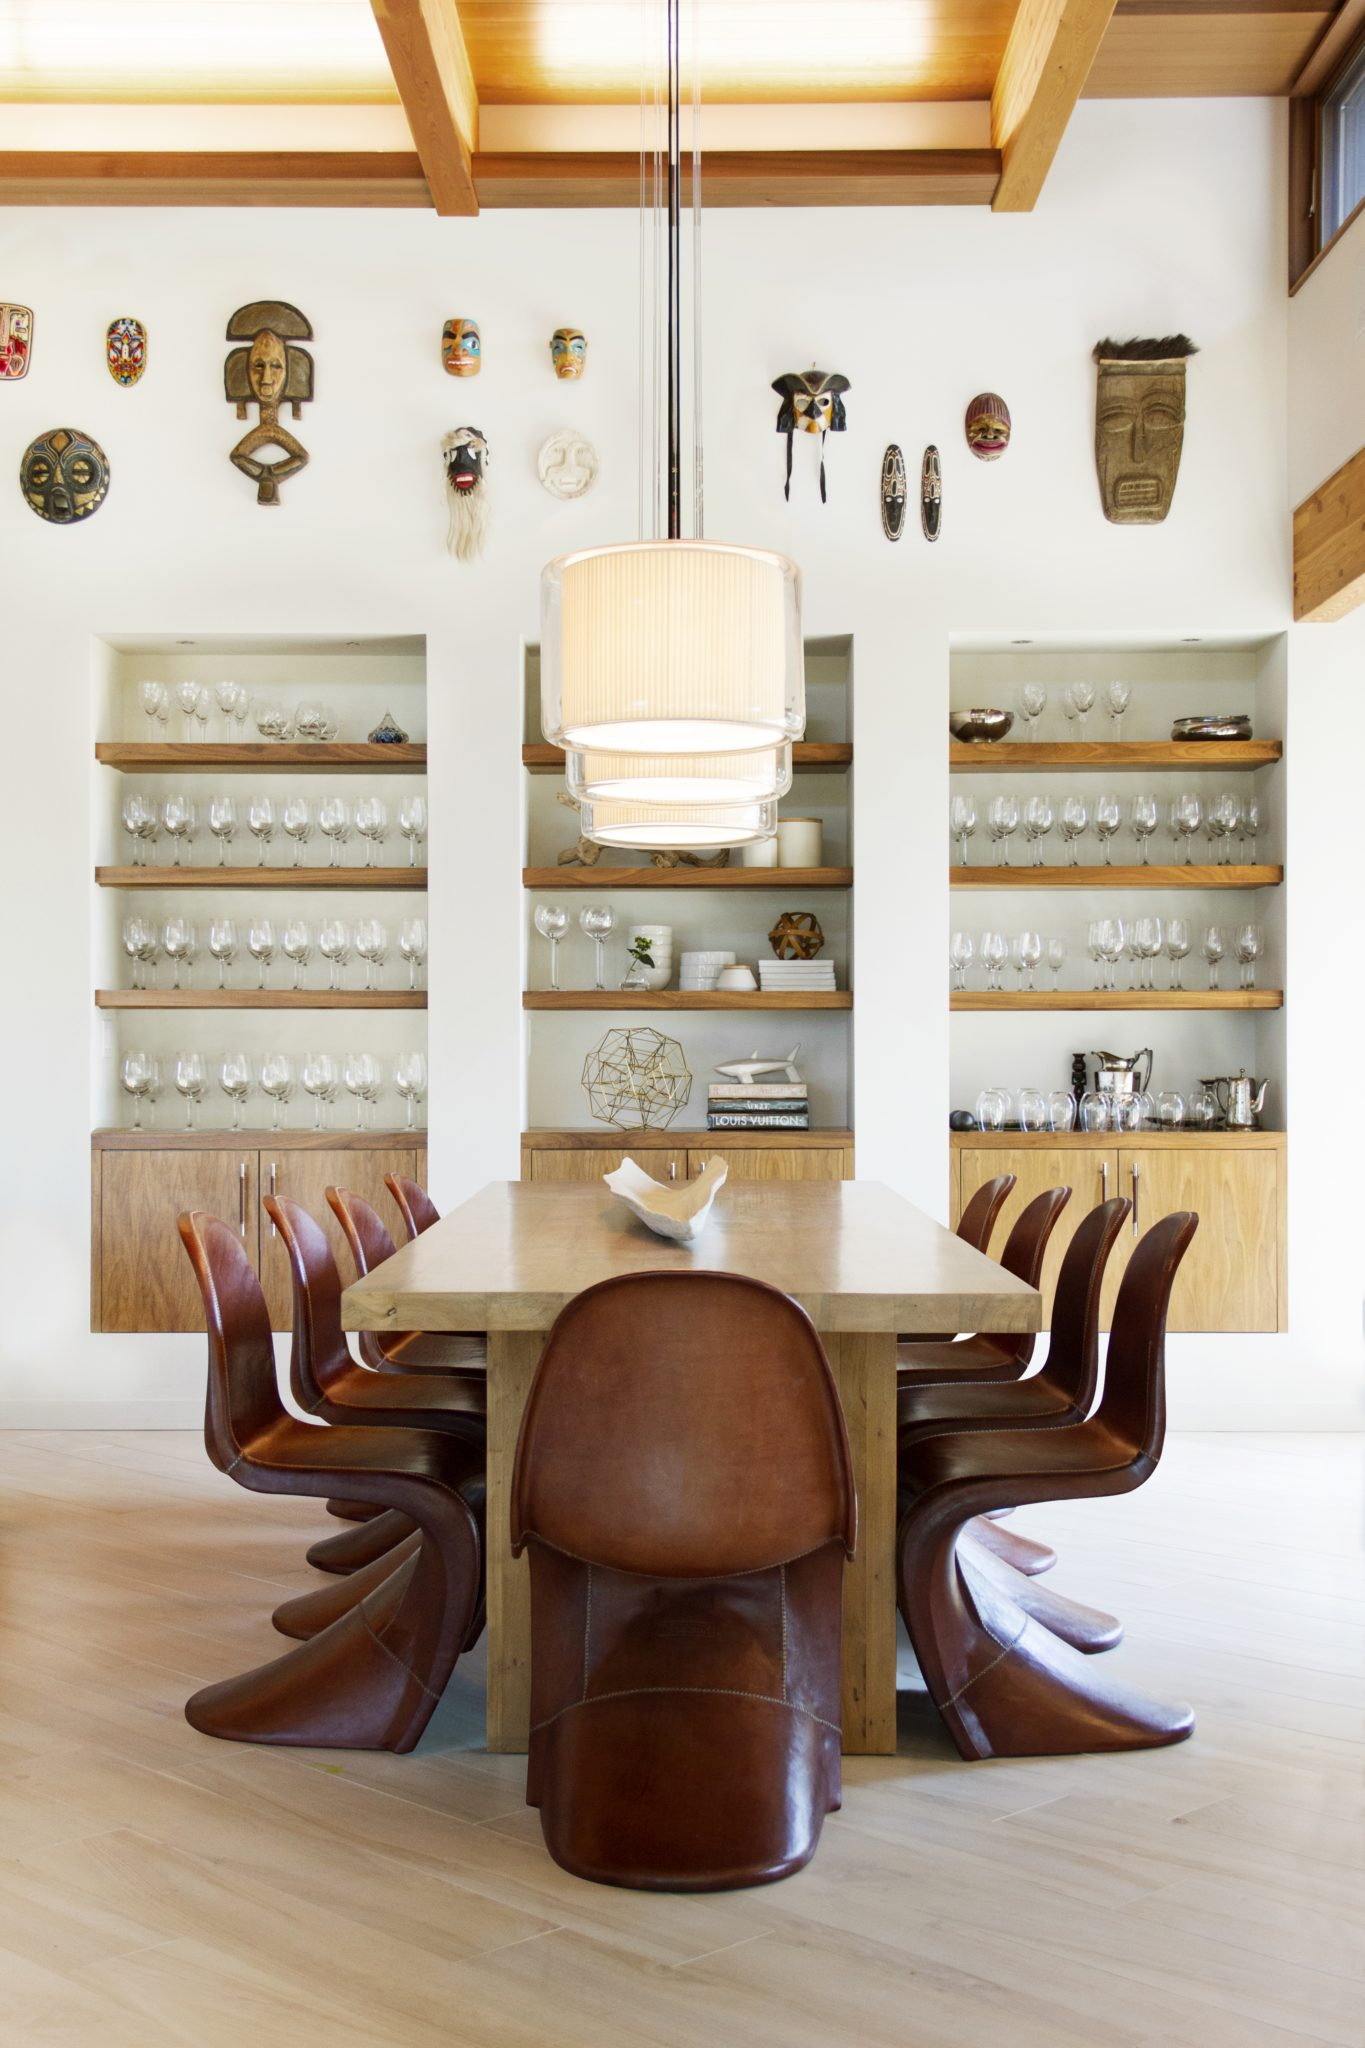 In the dining area, leather chairs from Jayson Home are arranged around the clients' table underneath a row of suspension lightsfrom Marset. Above the built-in black walnut shelving constructed by Karma Dog Construction, the designers hung various masks that the clients had collected on their travels. The floor tile is from Designtra.